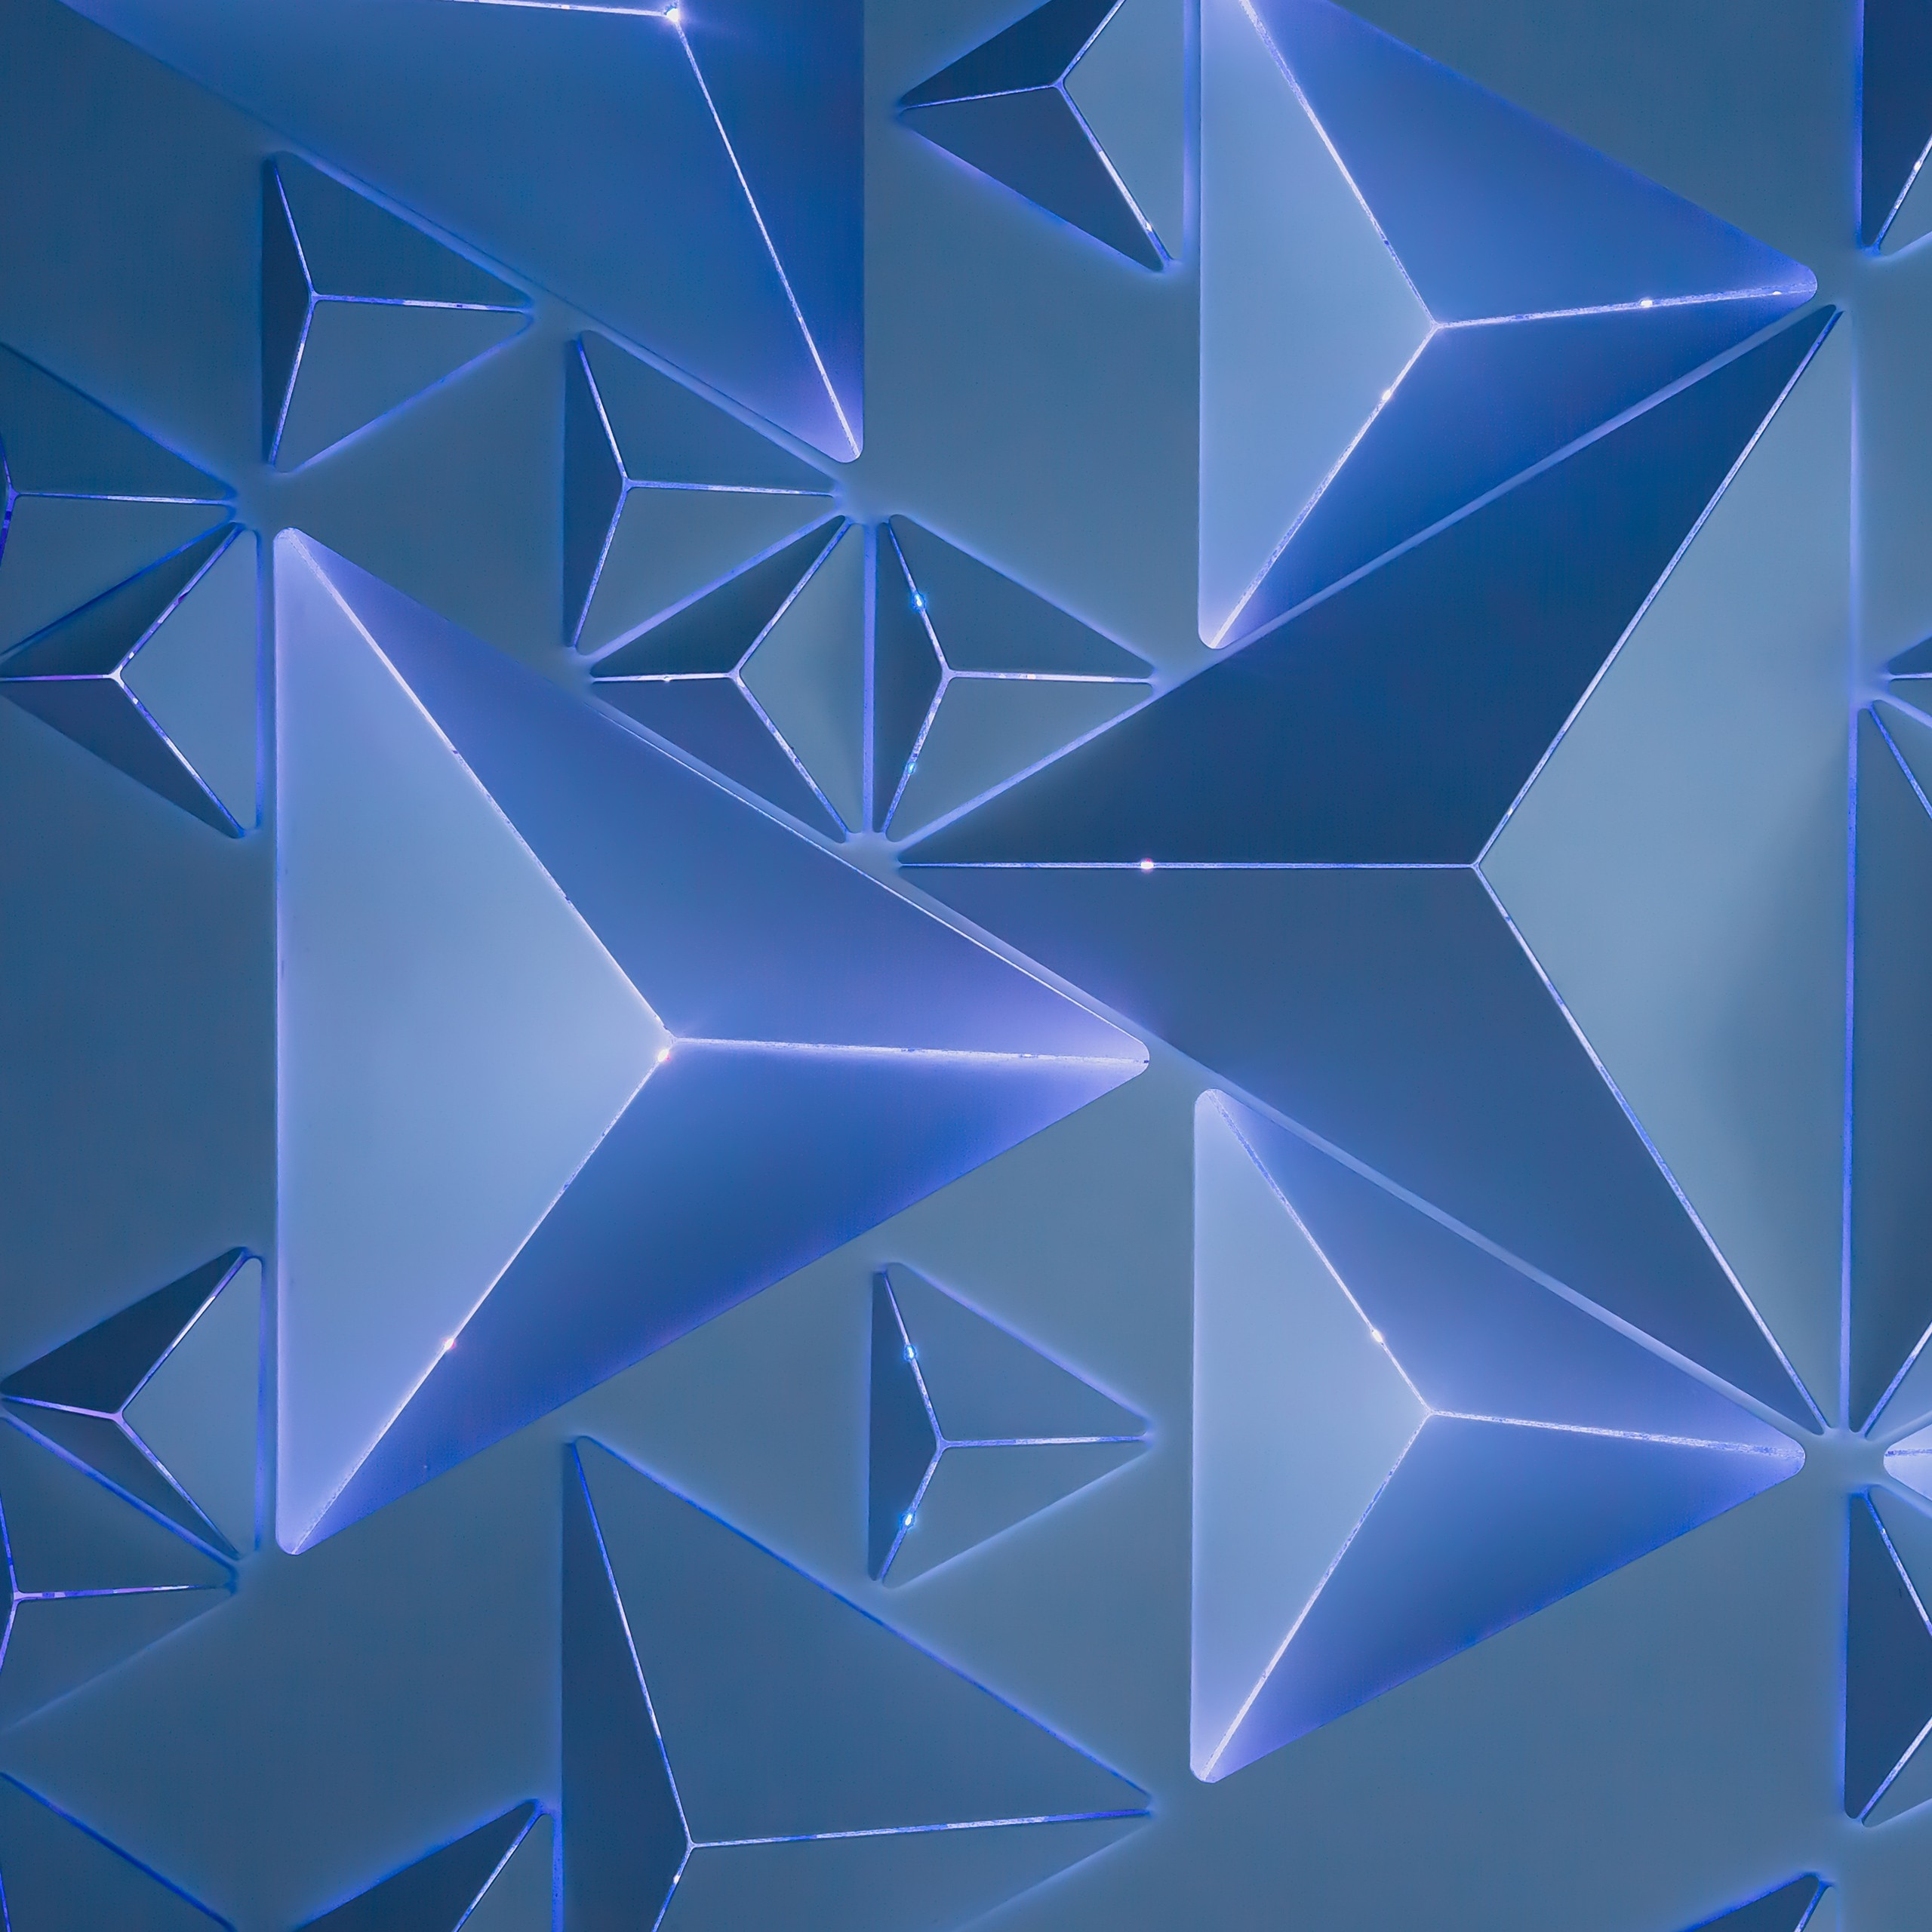 Hd Wallpapers For Windows 7 Download Blue Geometry 4k Wallpapers Hd Wallpapers Id 23780